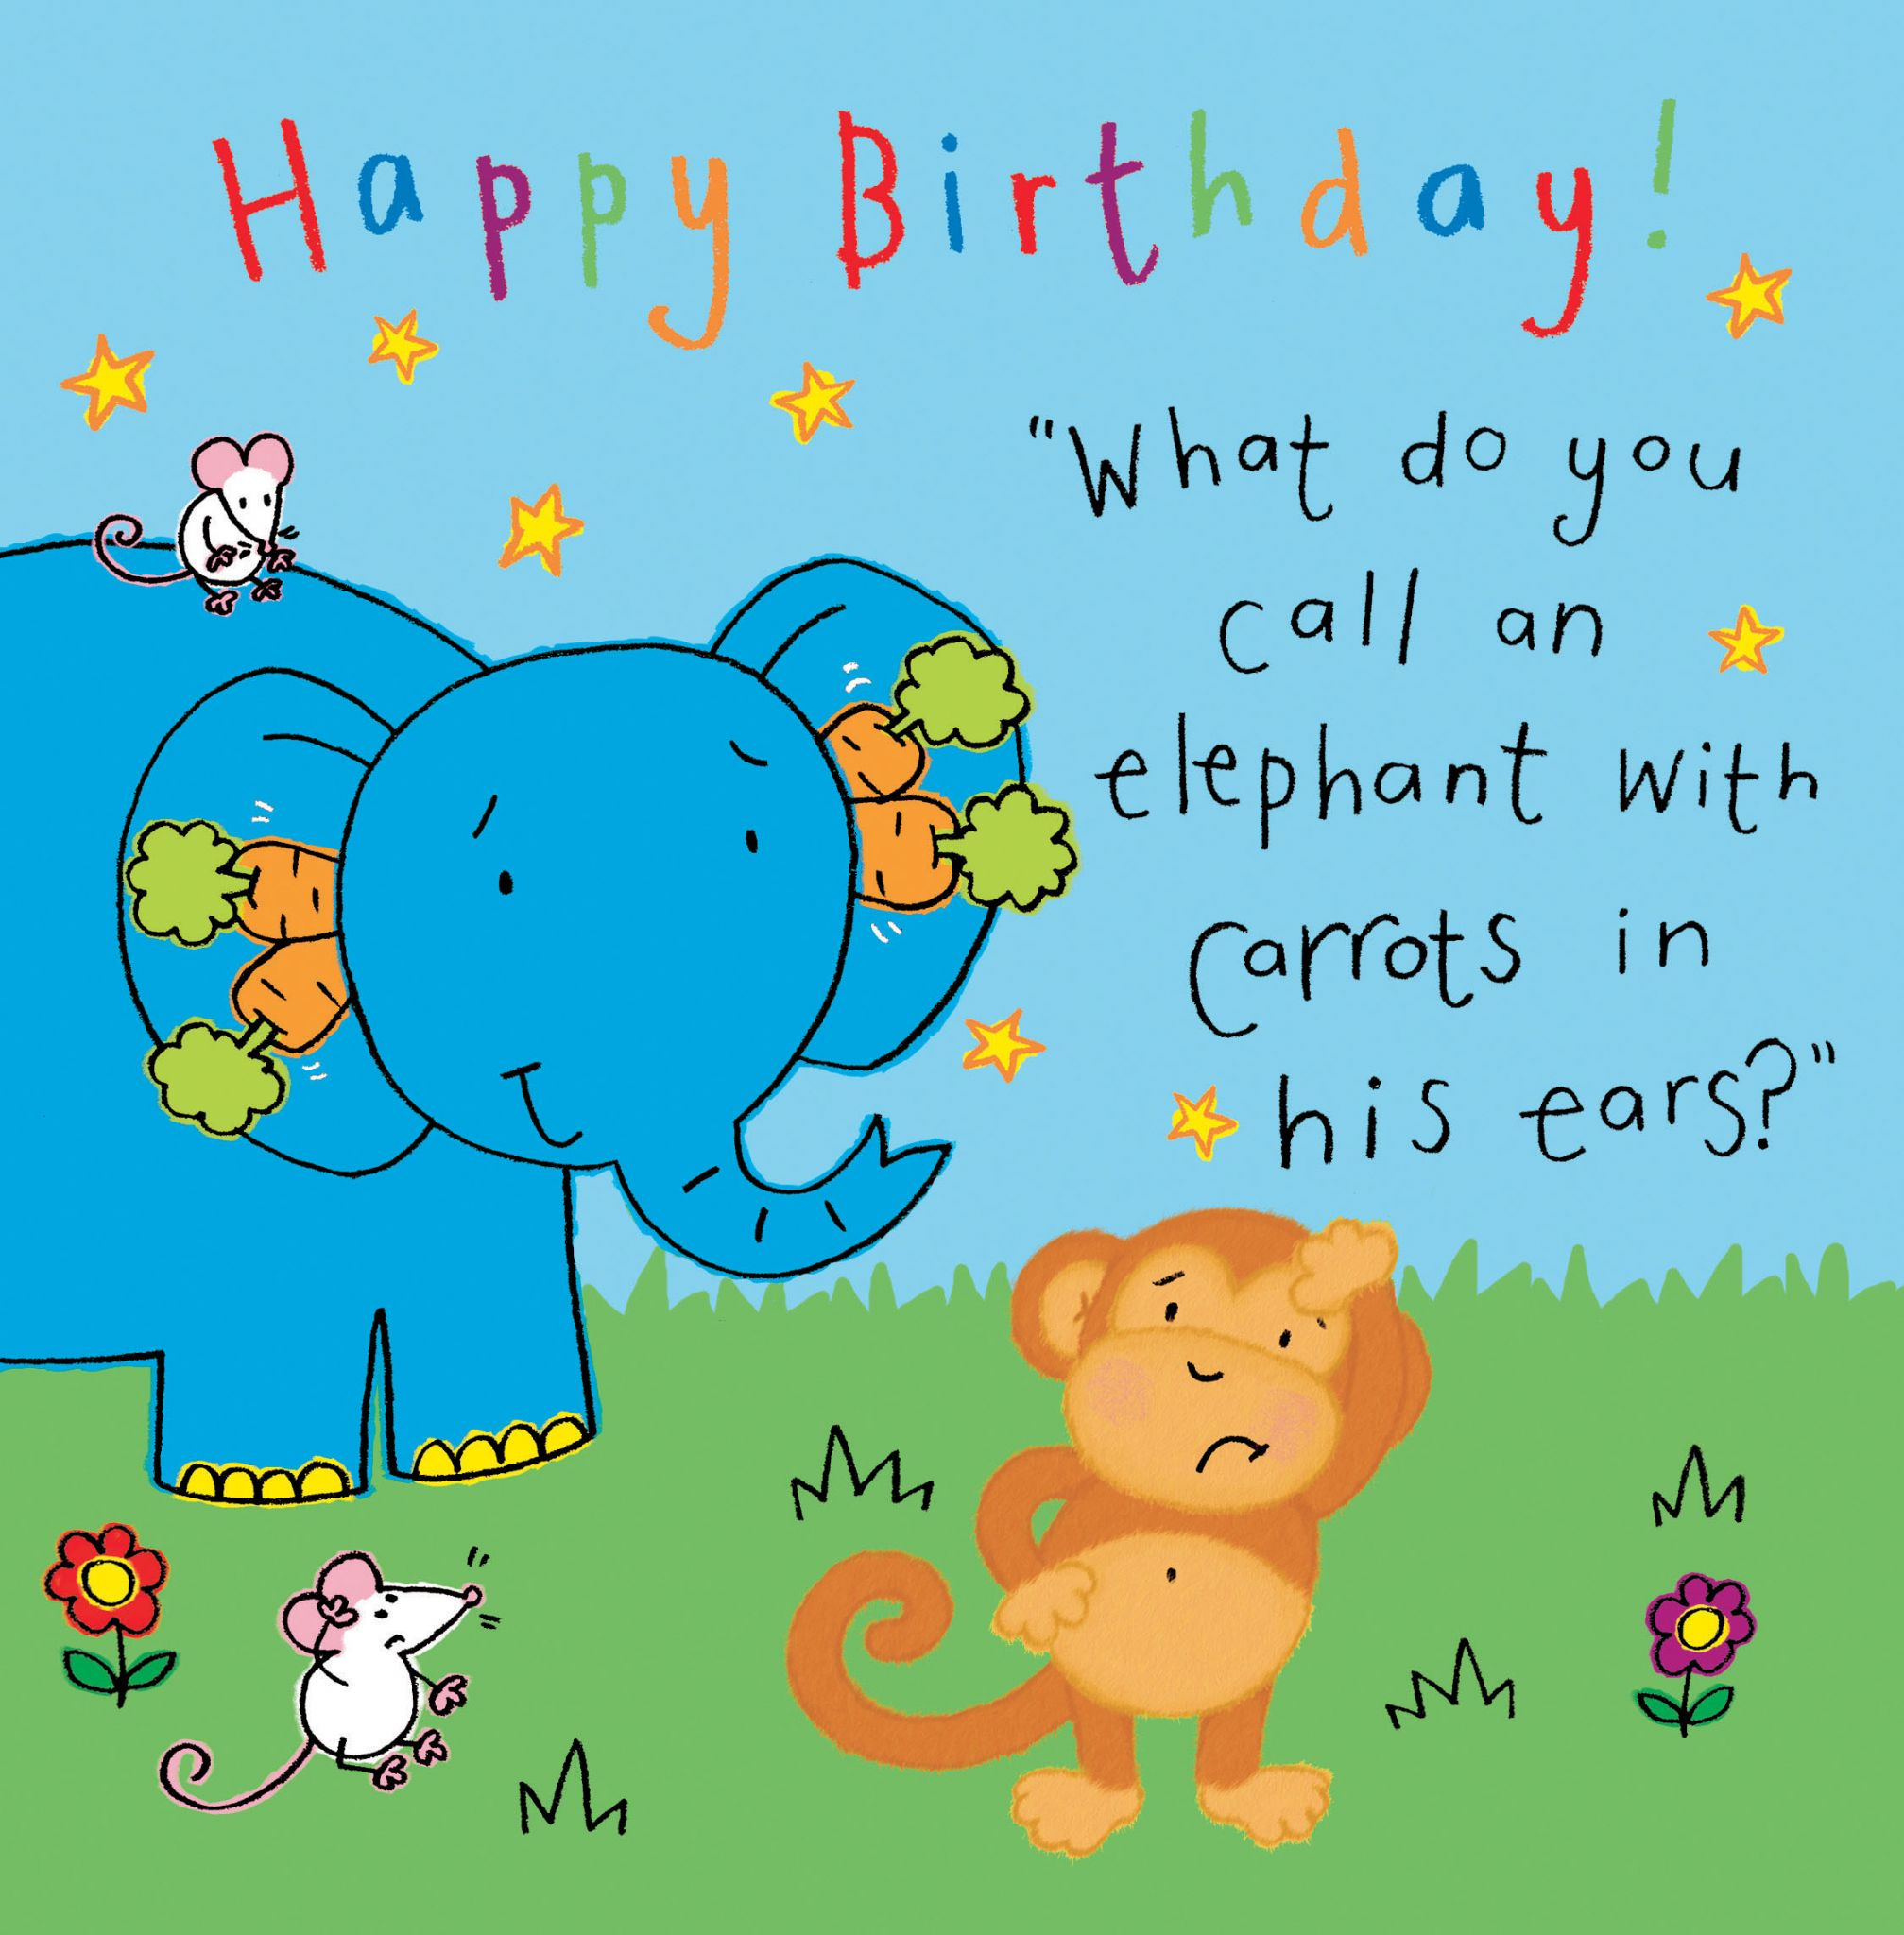 Elephant Funny Joke Birthday Card For Kids TW431 – Joke Birthday Card